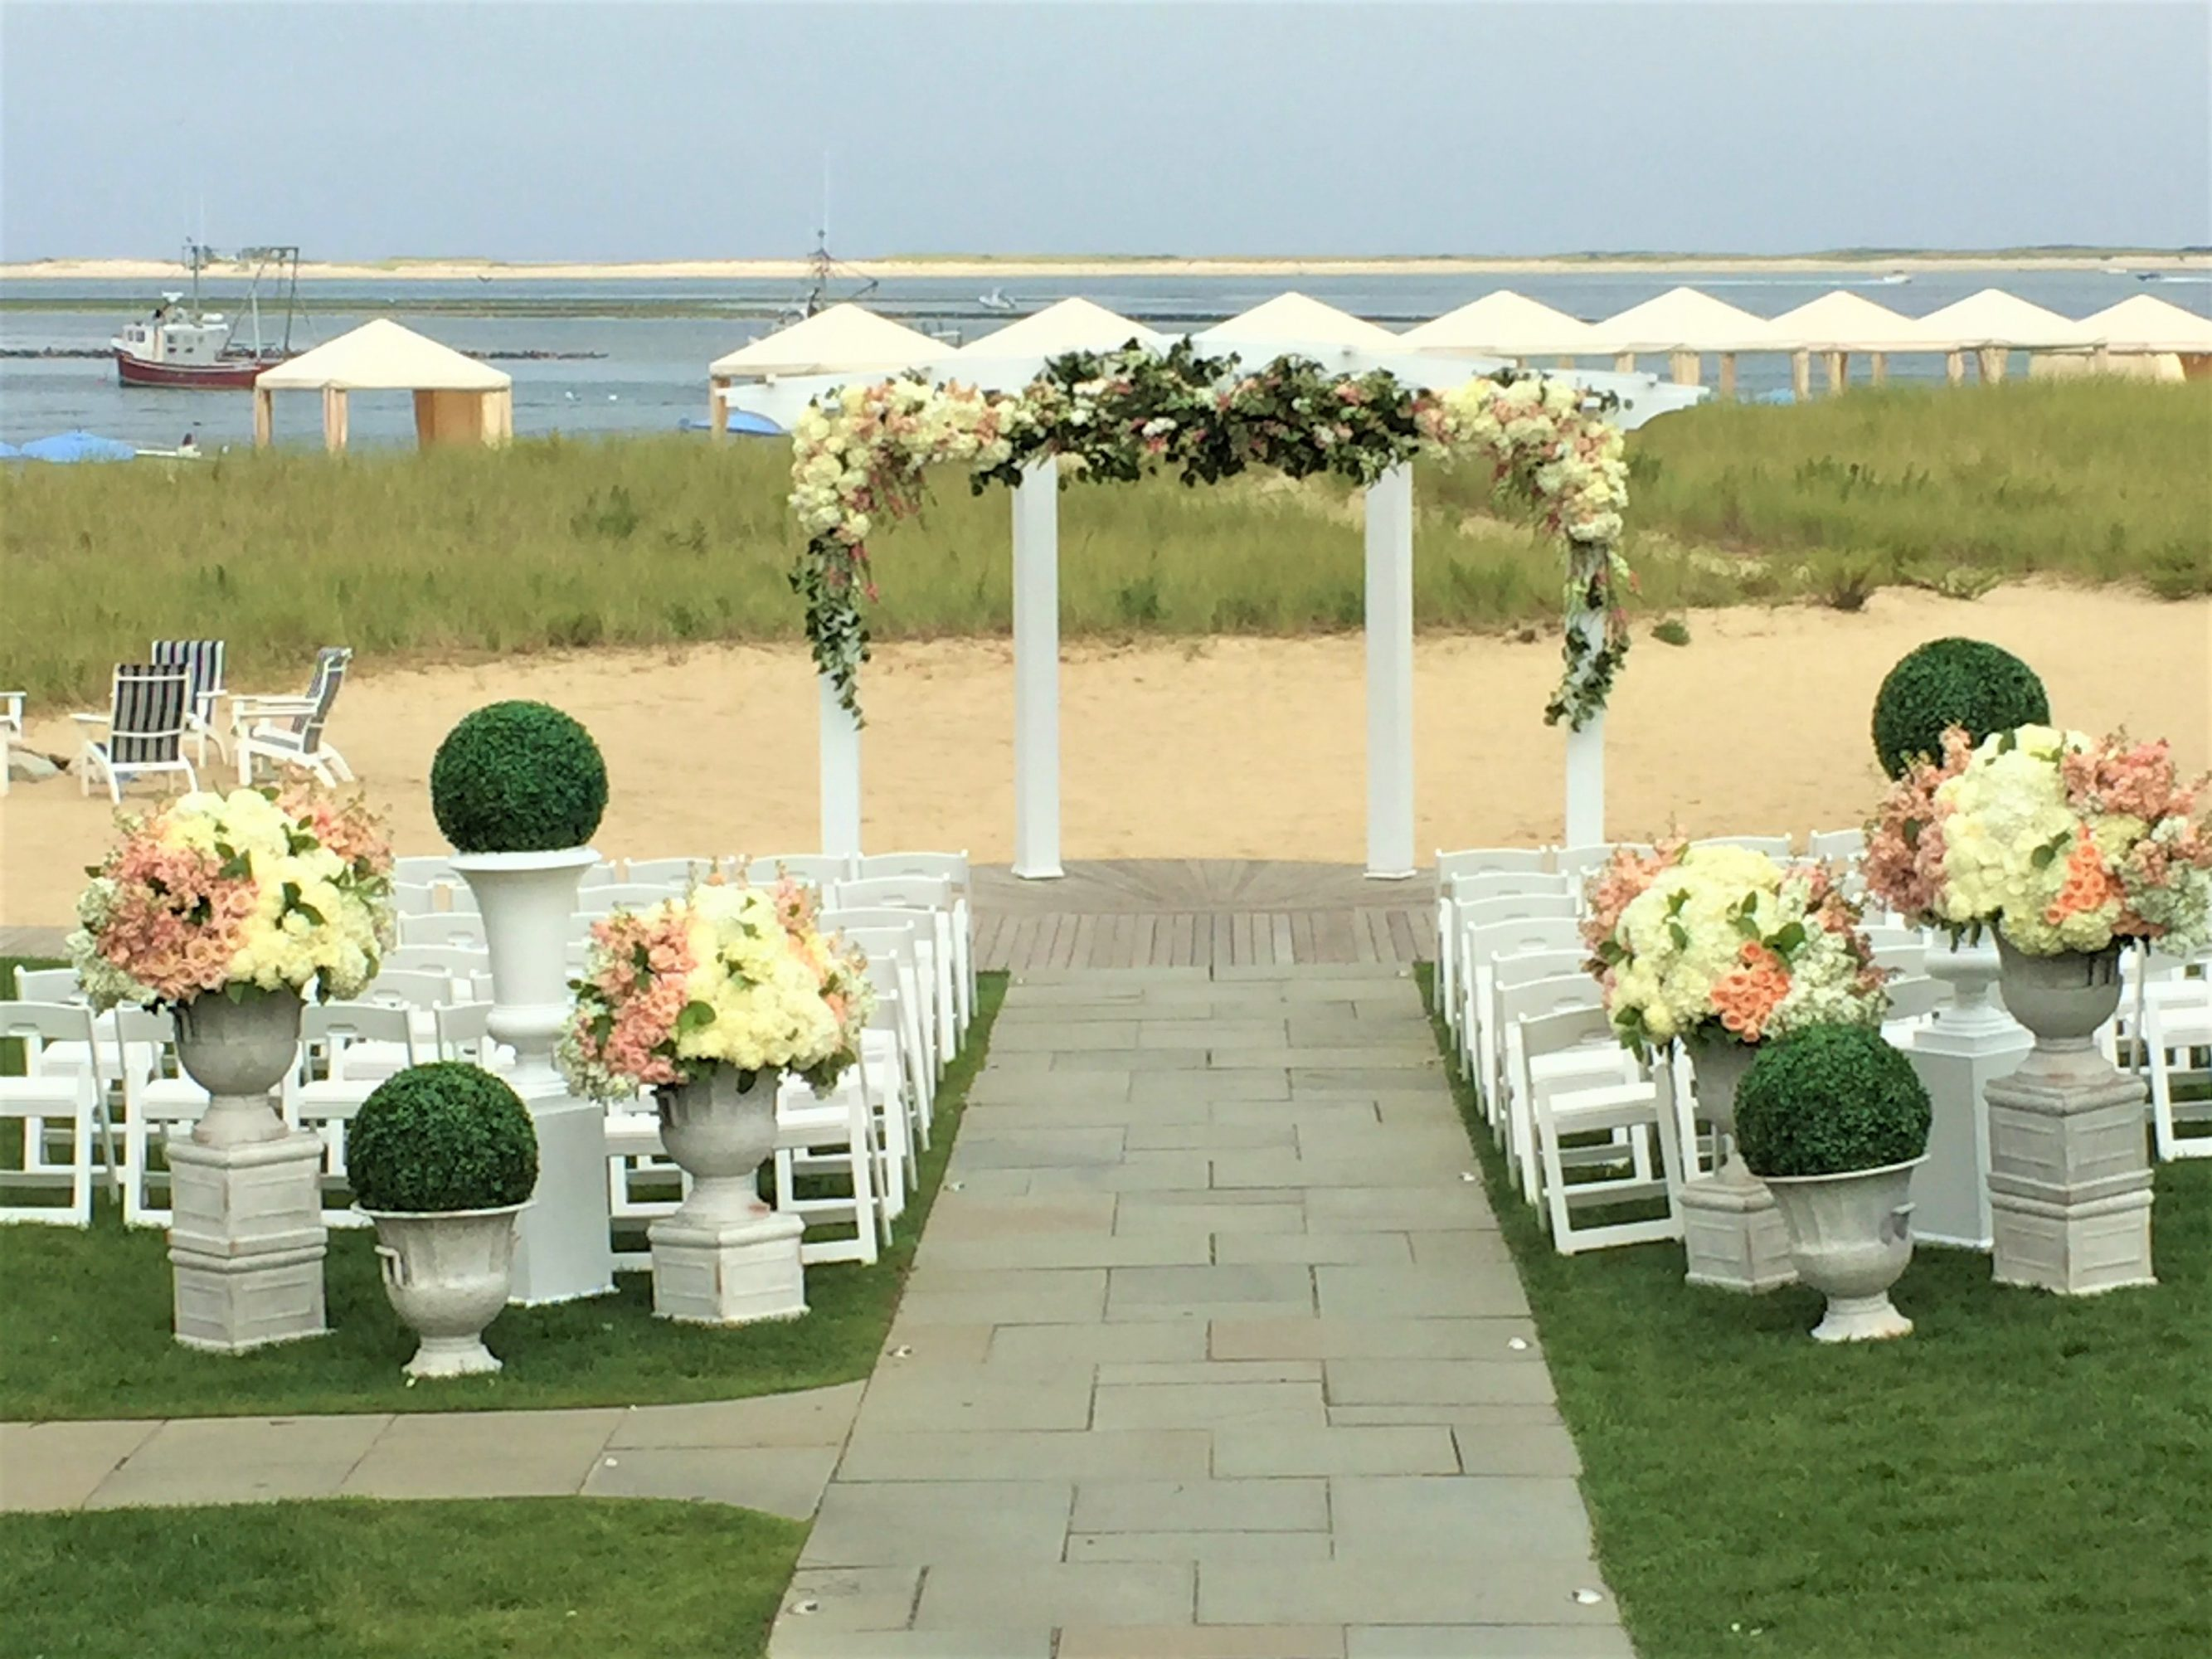 Flou(-e)r_Specialty_Floral_Events_Beach_Wedding